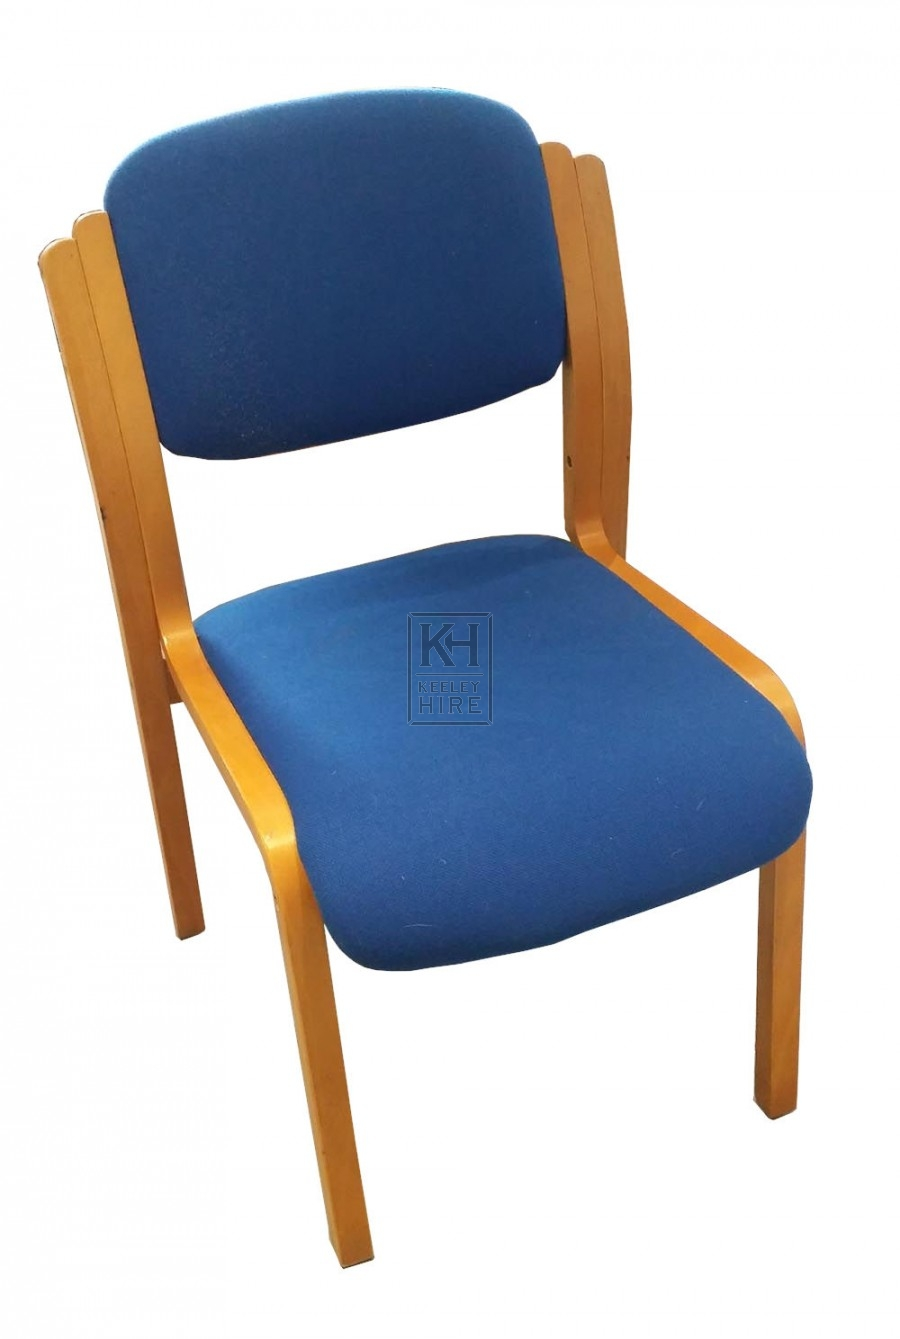 Contemporary office chair - without arms